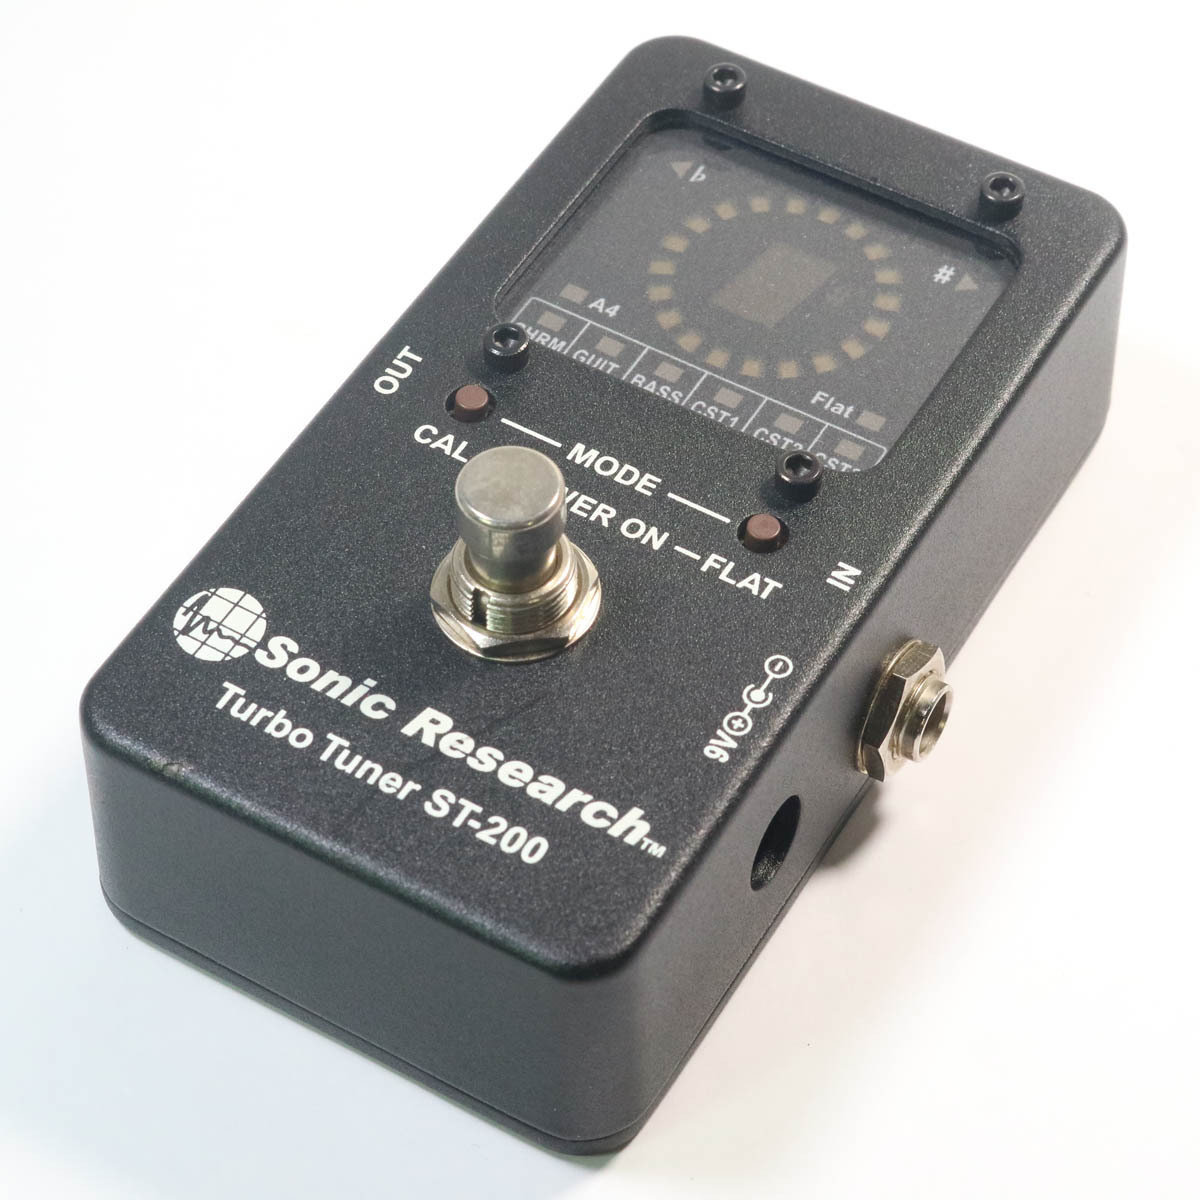 Sonic Research 【中古】Sonic Research ST-200  【御茶ノ水本店】